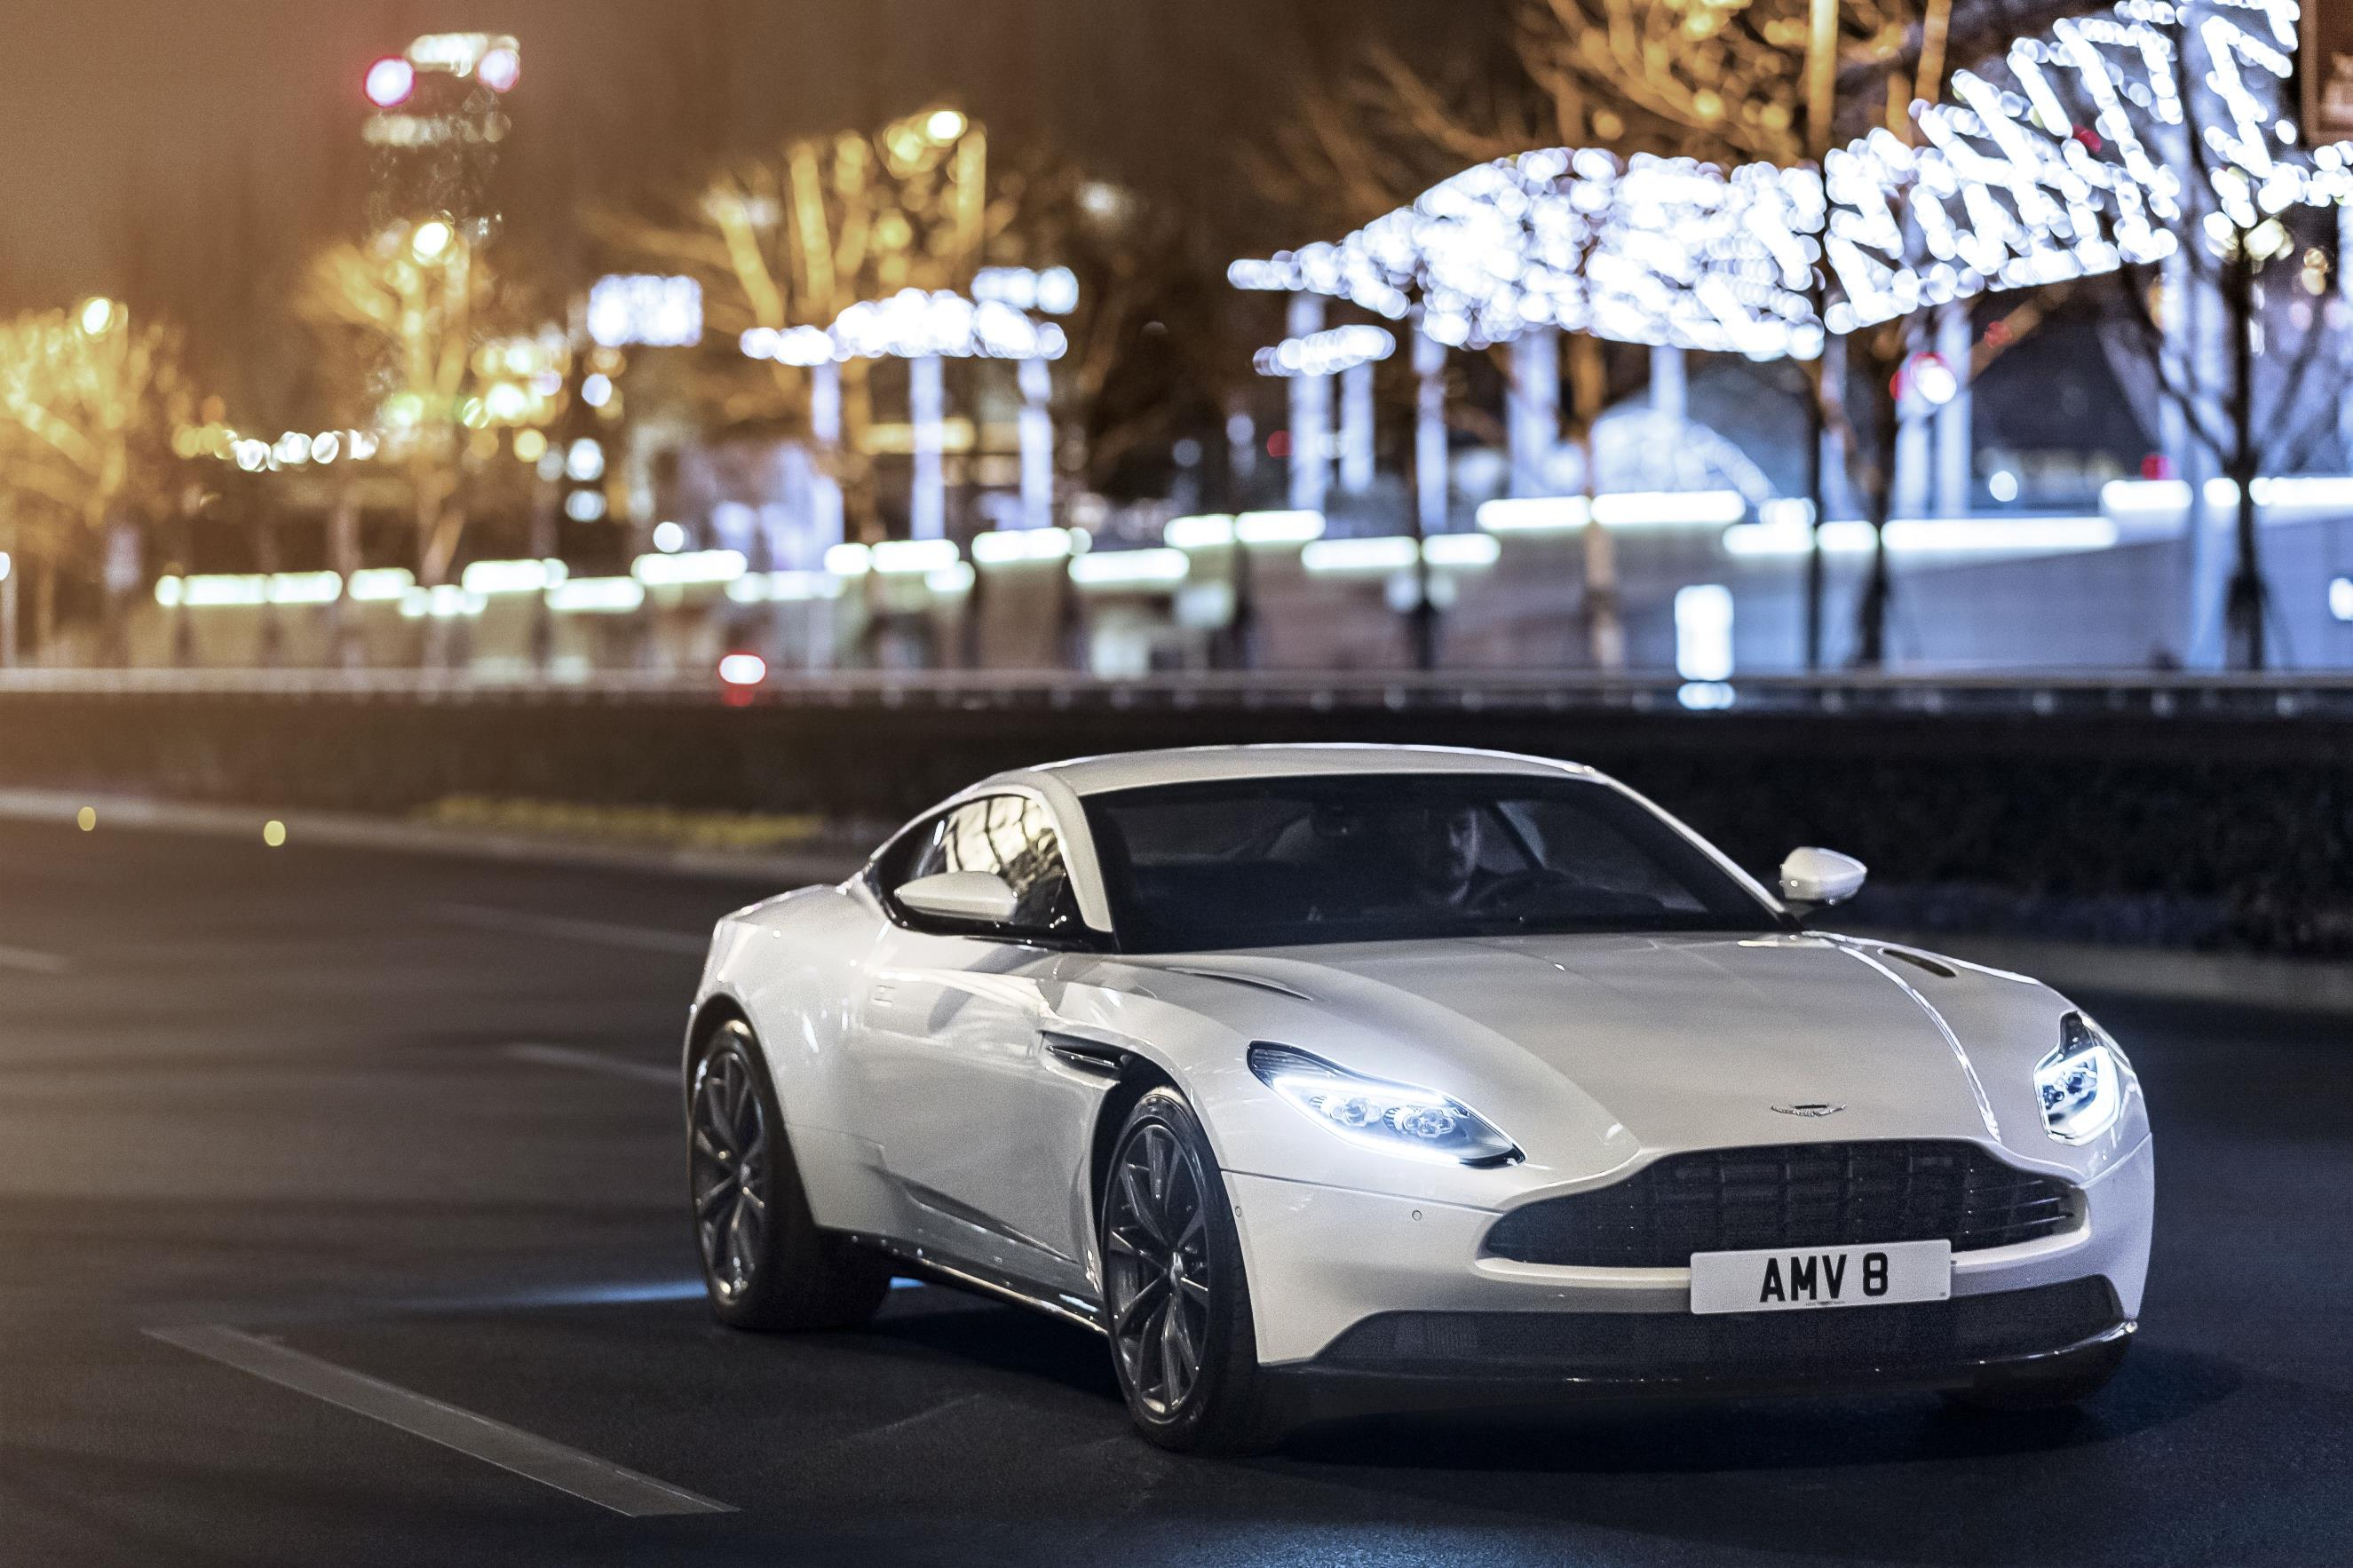 2018 aston martin db11 gains 4.0l twin-turbo v8 engine from mercedes